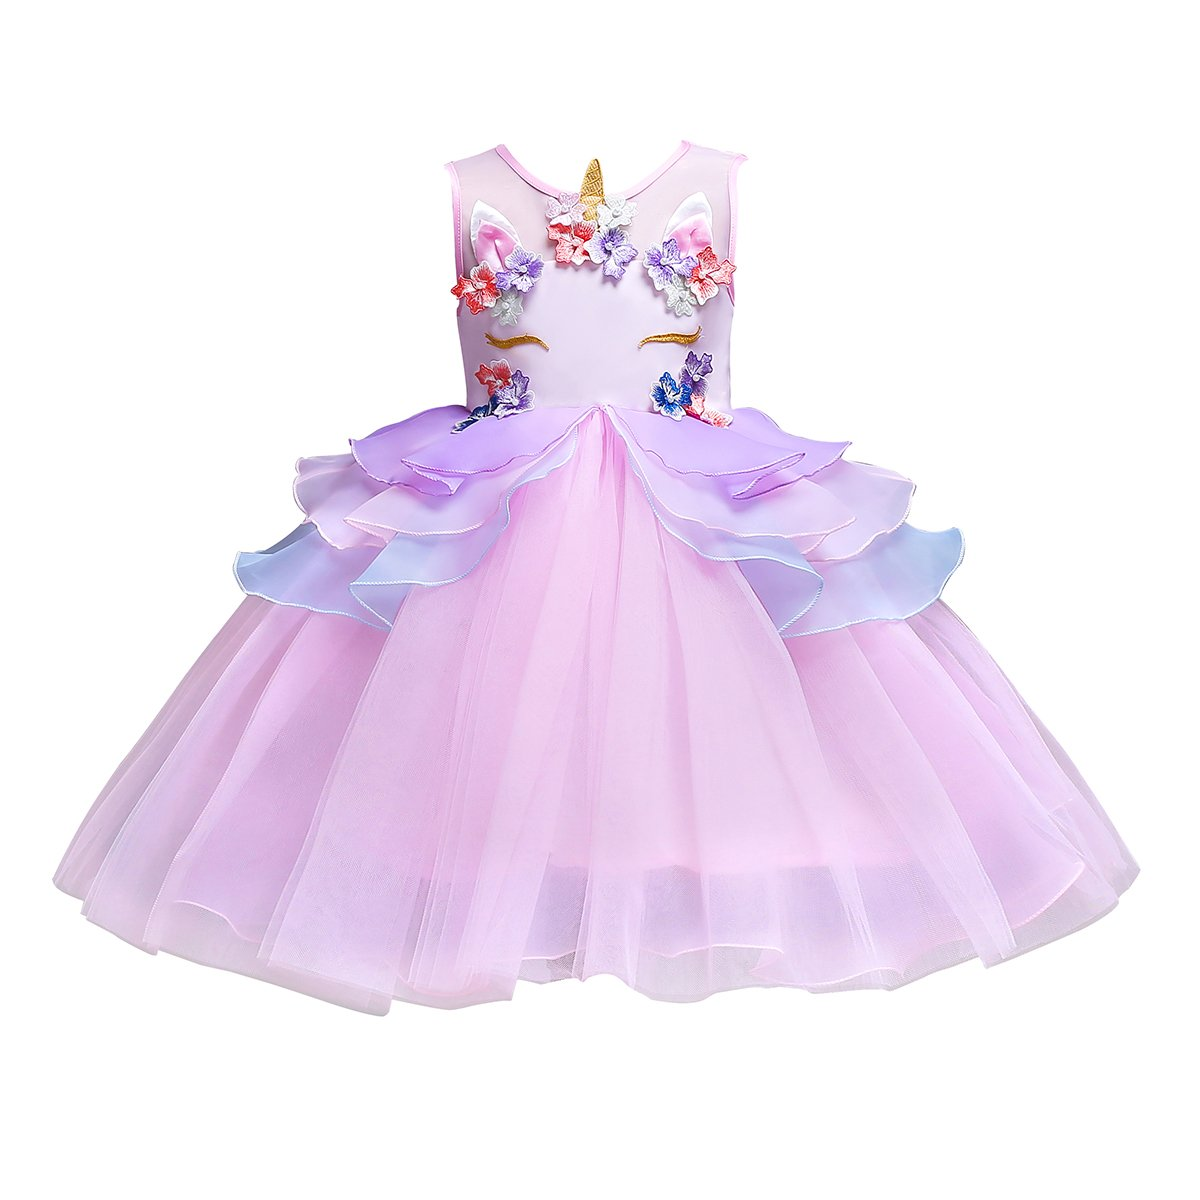 FEESHOW Girls Appliques Rainbow Tutu Dress Princess Cosplay Costumes Party Outfit Birthday Tutu Dress up Clothes Pink #2 5-6